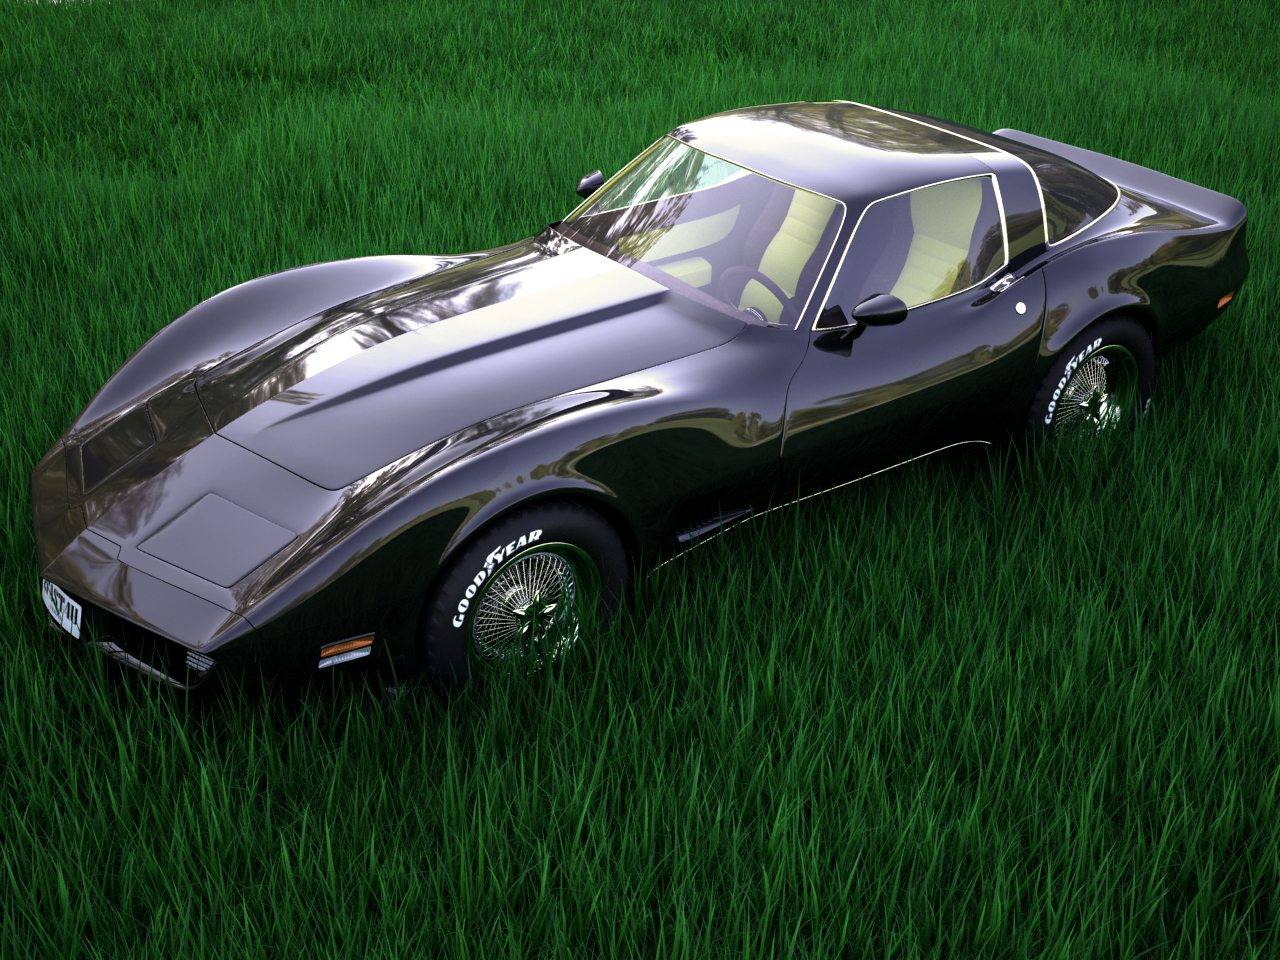 1980 Corvette Specs >> 1980 C3 Corvette | Ultimate Guide (Overview, Specs, VIN Info, Performance & More)